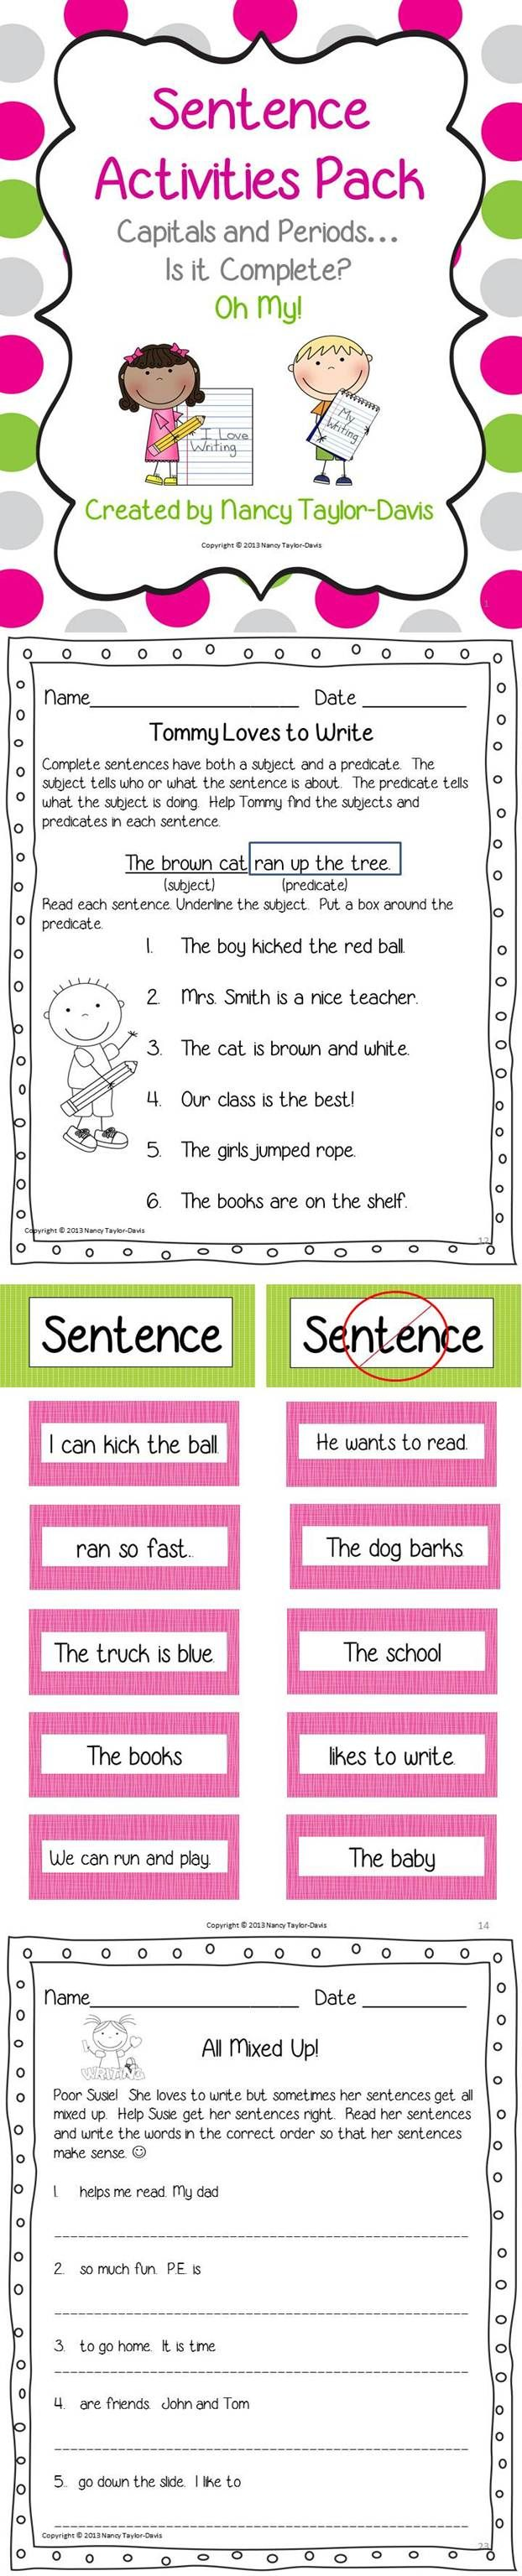 Teaching students to write complete sentences is an important skill. This packet includes resources and activities to help you address: •Subjects and predicates (4 activities/ printables) •Complete sentences (3 activities/ printables) •Word order in sentences (3 activities/ printables) •Capitalization /punctuation of sentences (3 activities/ printables) •Both color and black and white copies $2